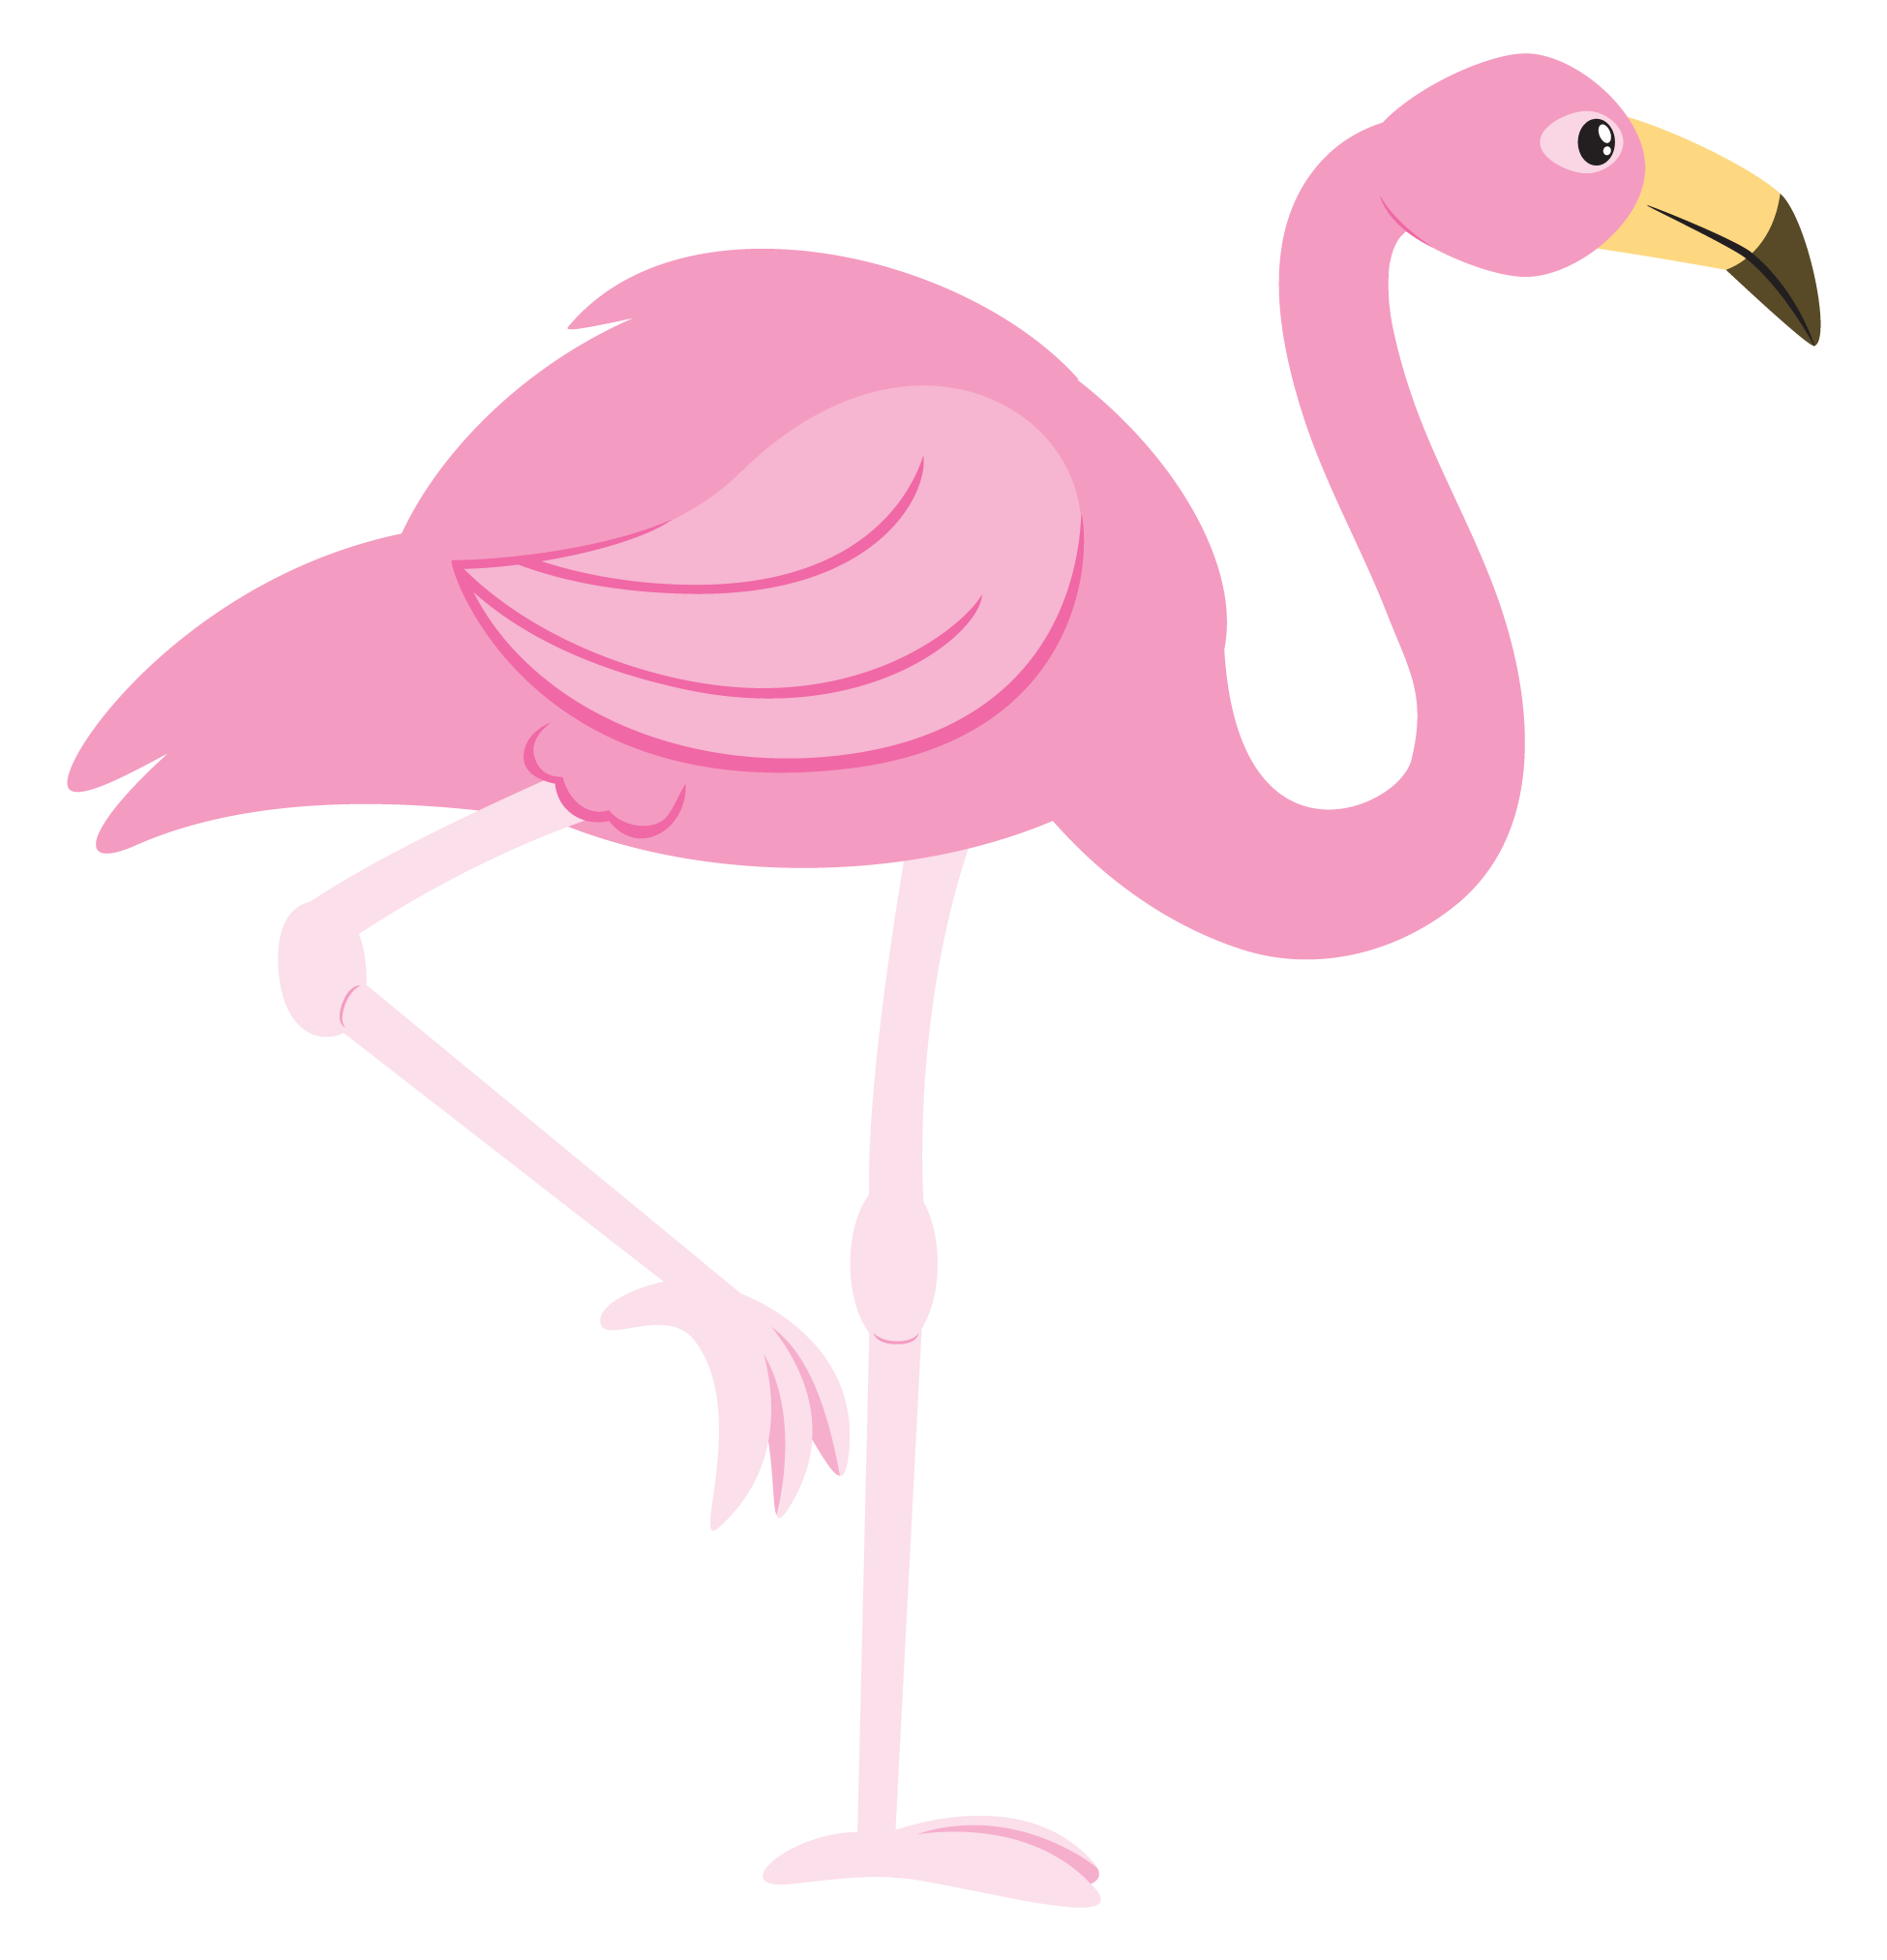 Flamingo clipart Public Free Use Domain Flamingo